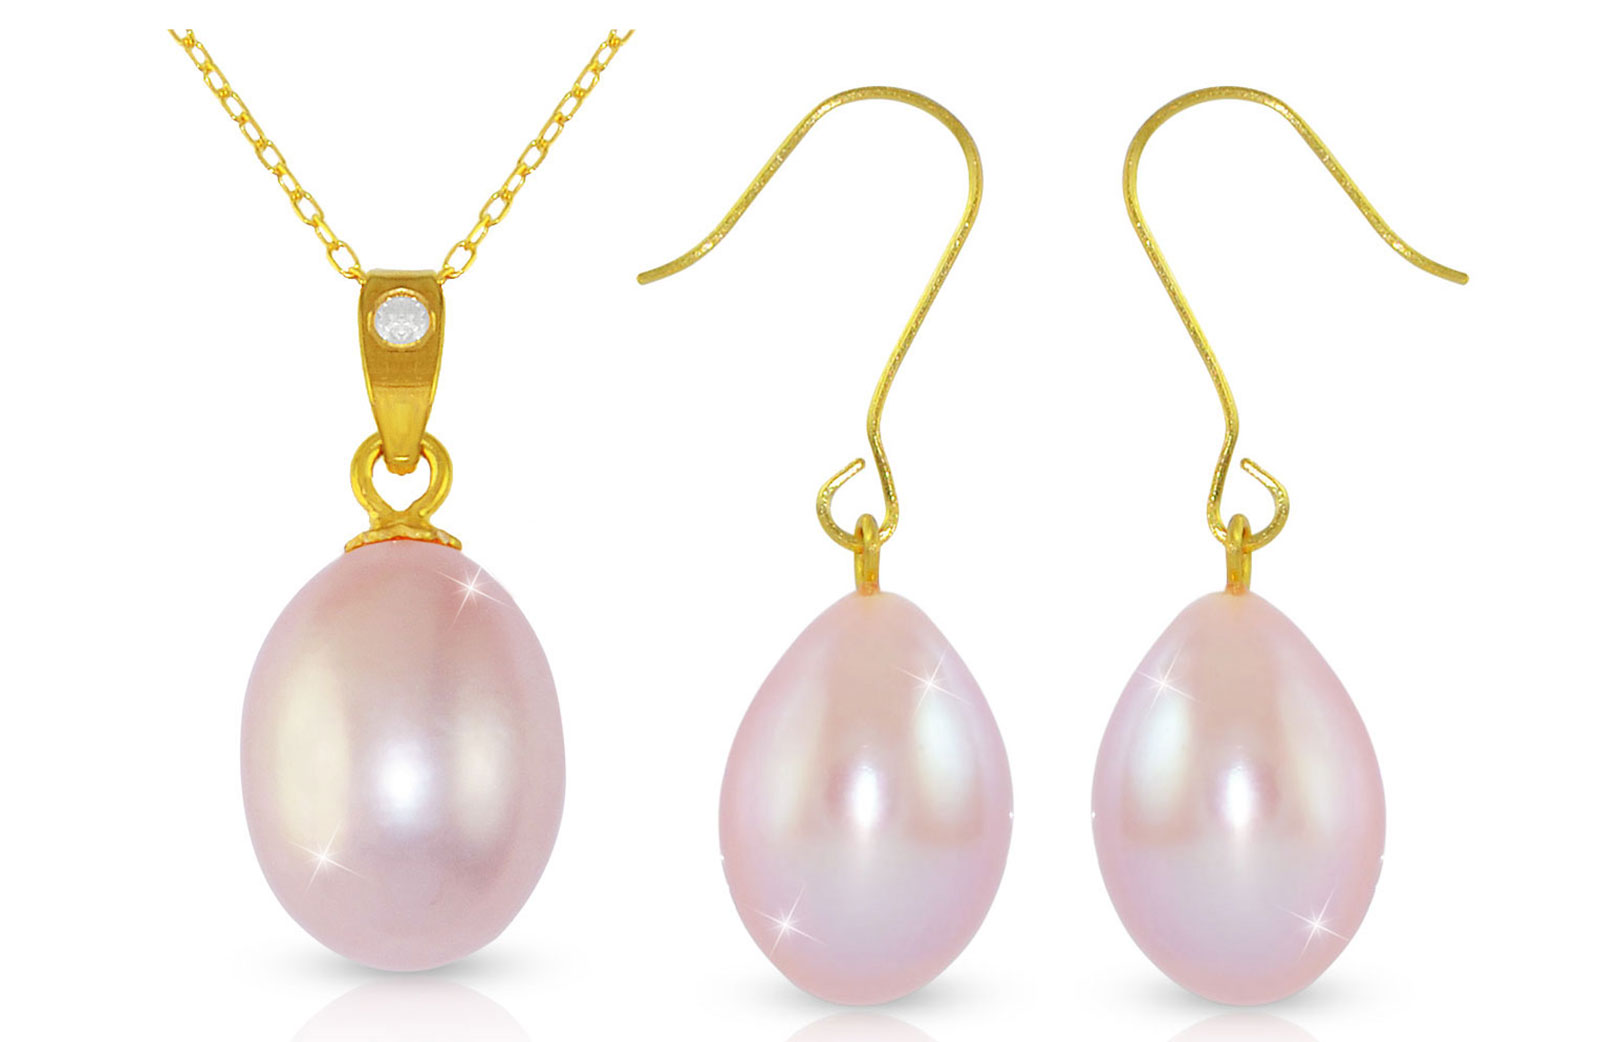 Vera Perla Pur. Pearl 18K Gold Diamond Pendant with 18K Gold Chain/Earring